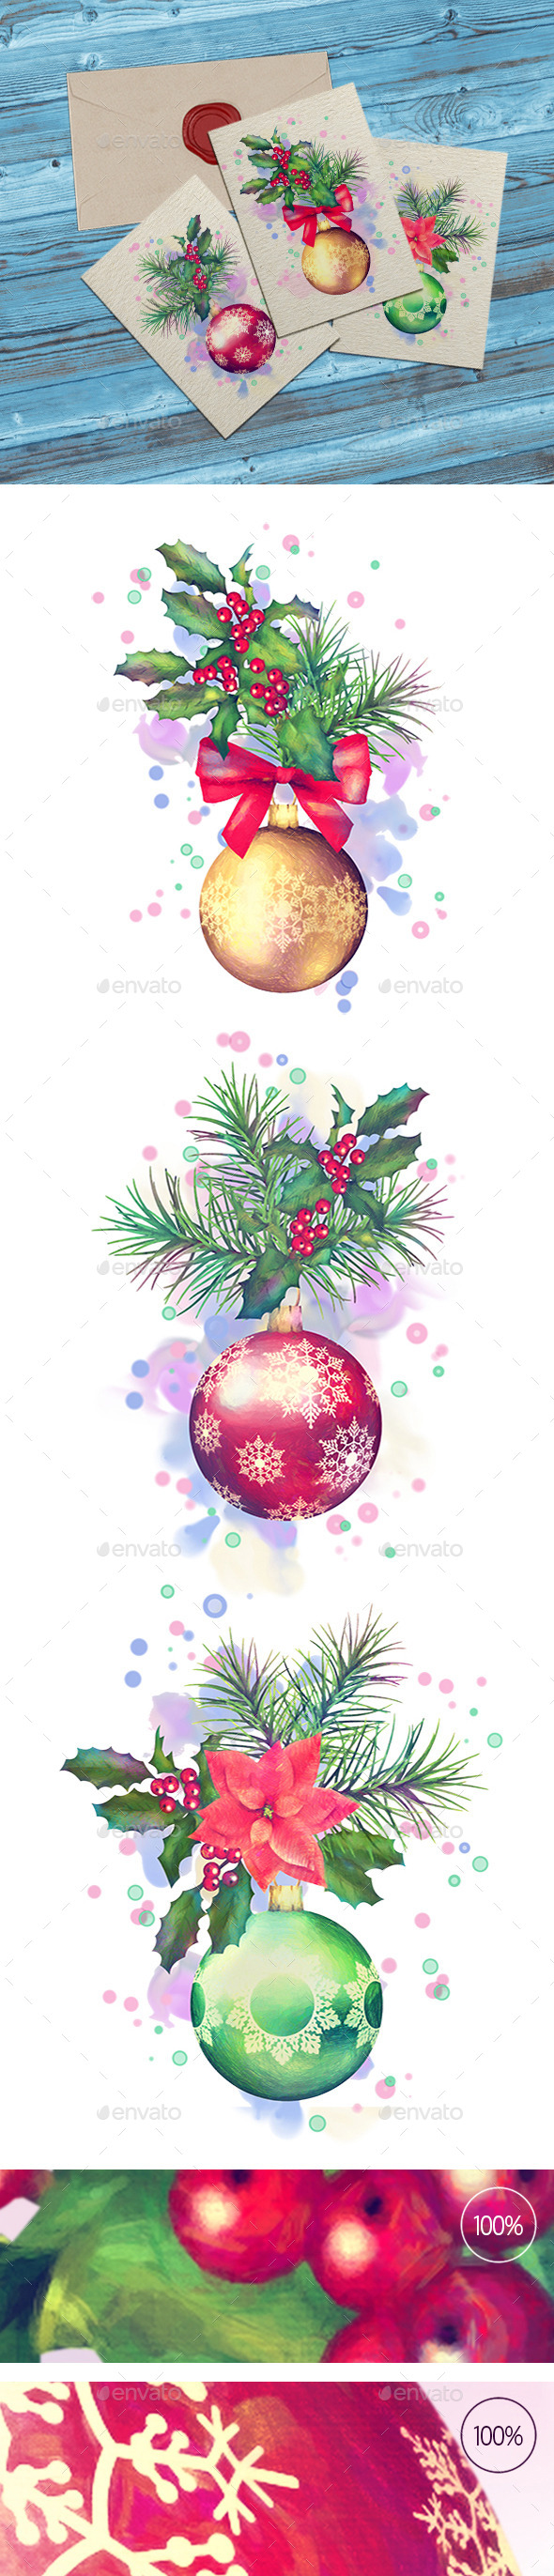 Watercolor Painting Christmas Ornaments - Objects Illustrations